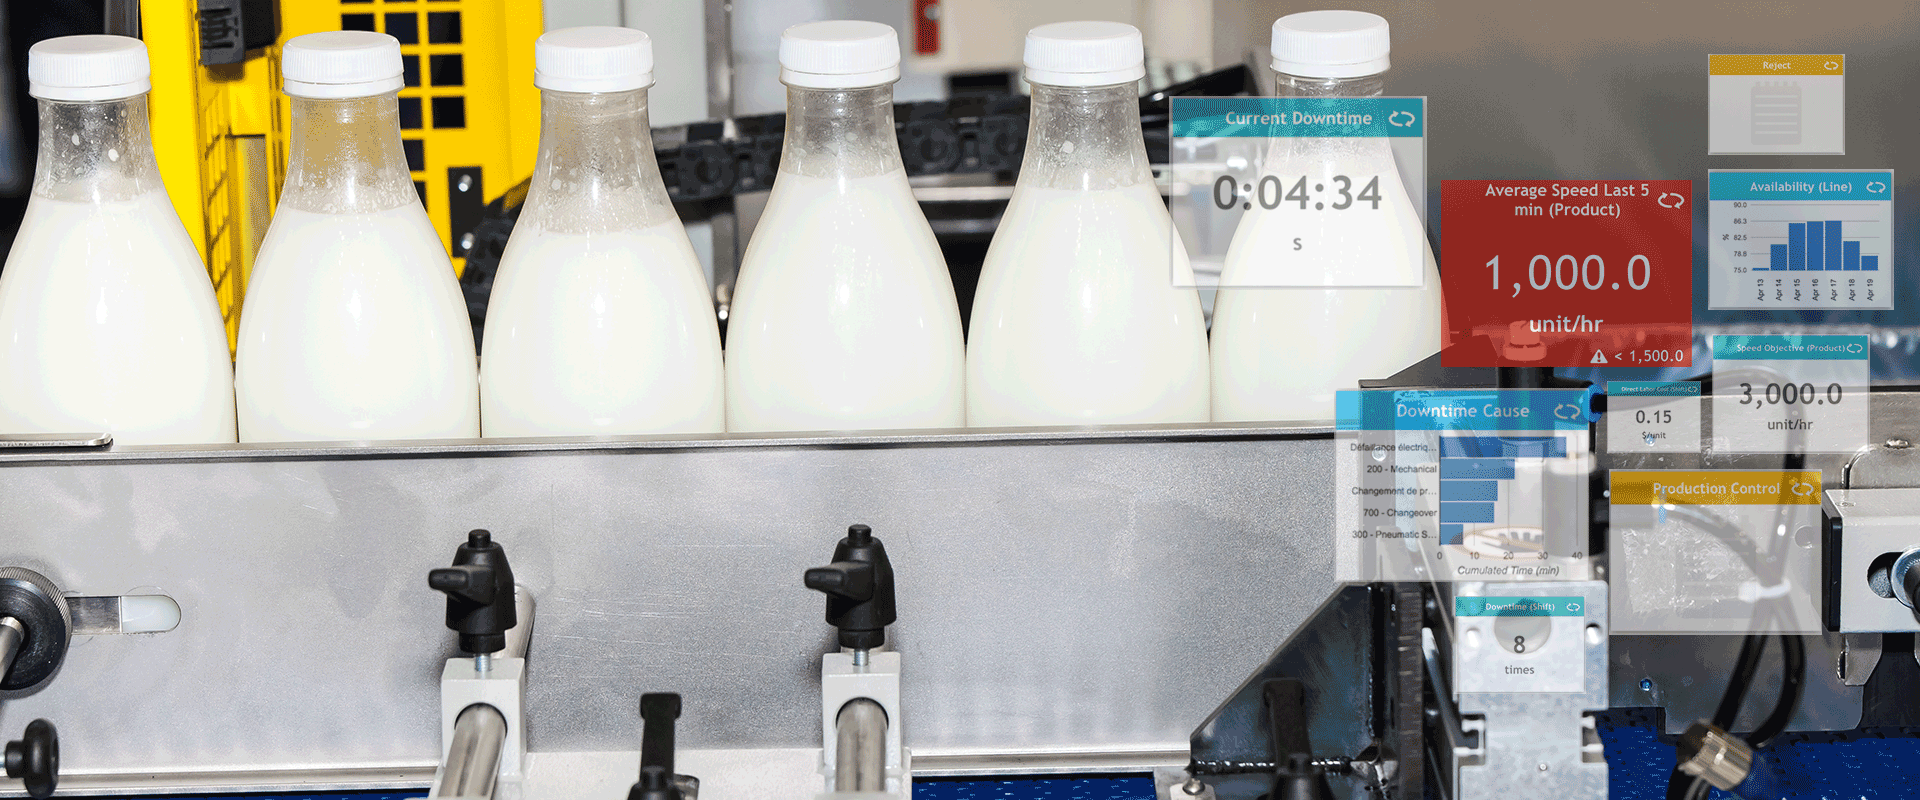 Worximity_Lean_Manufacturing_Dairy_Industry.png